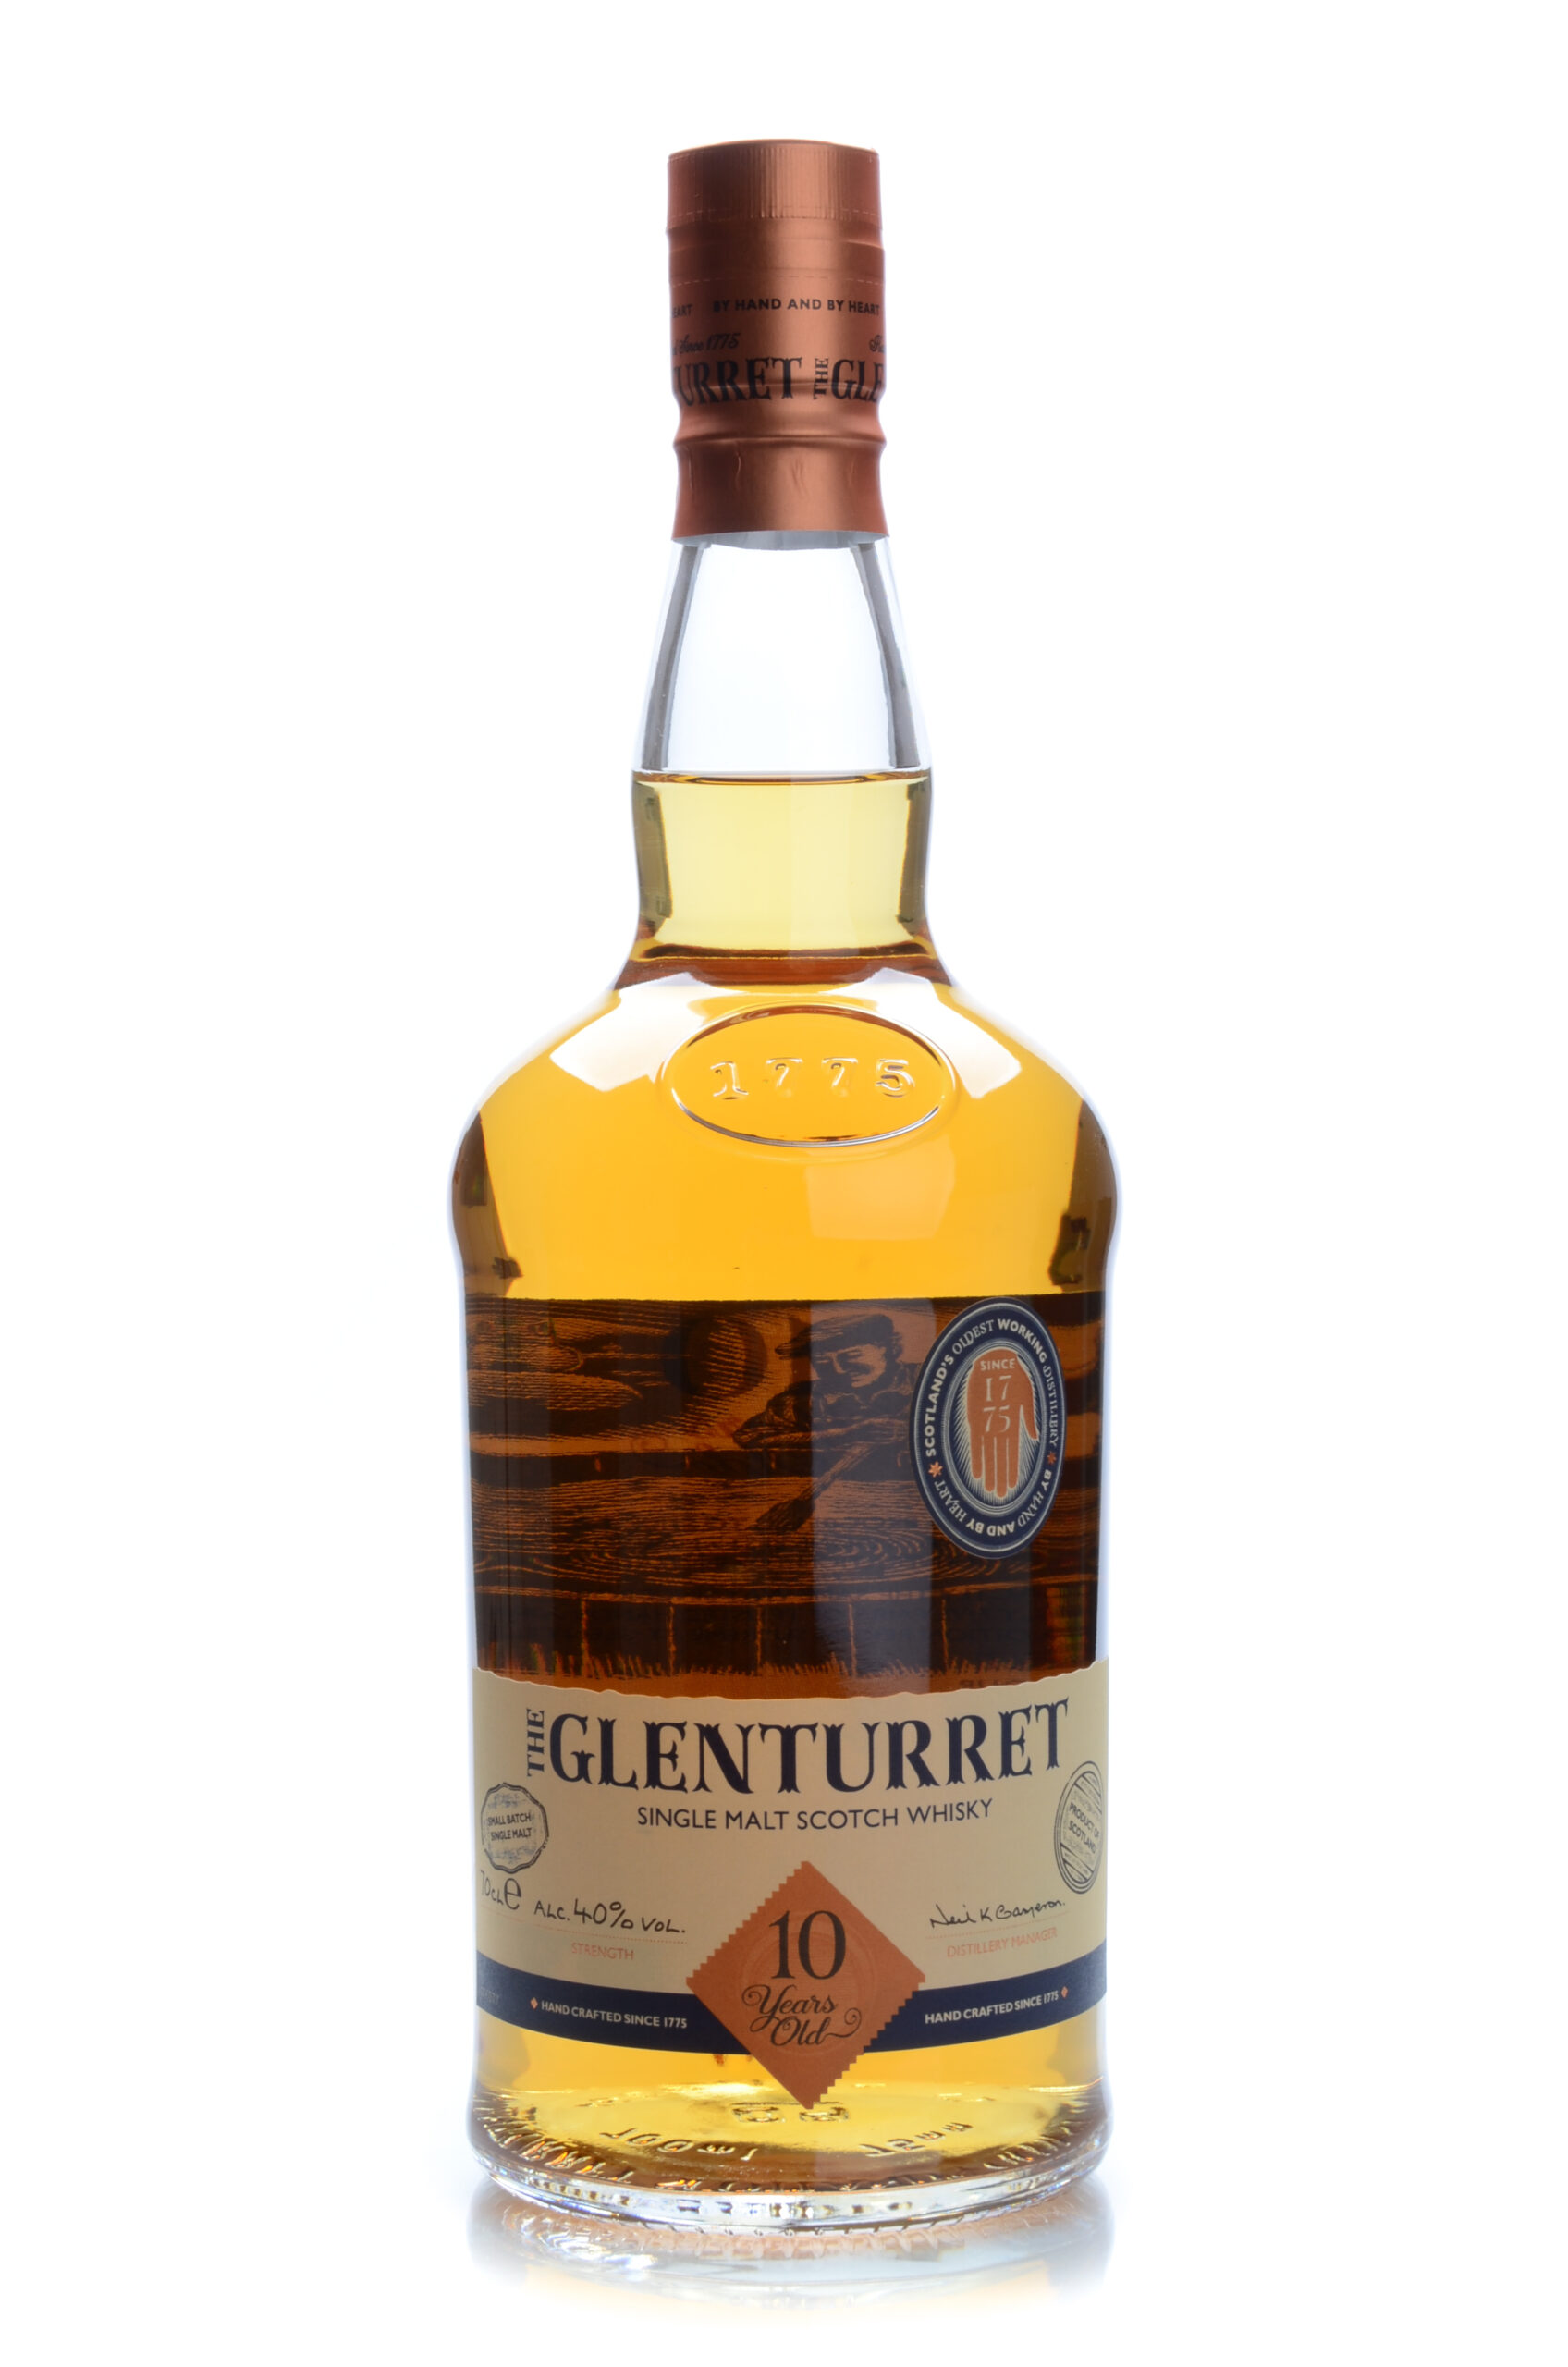 The Glenturret 10 years